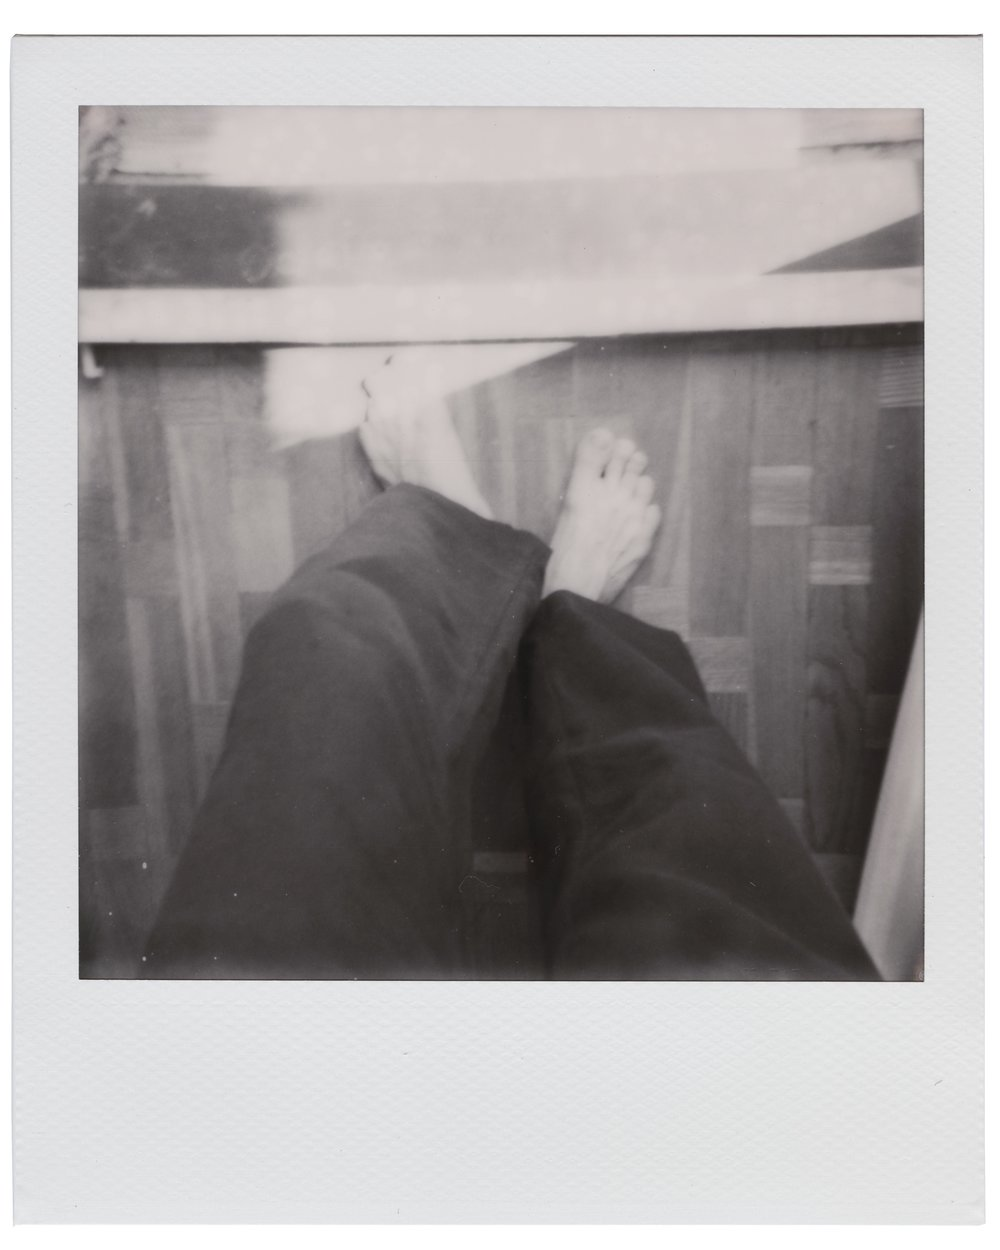 Feet, June 2 2018 (Polaroid 600) Thobias Malmberg